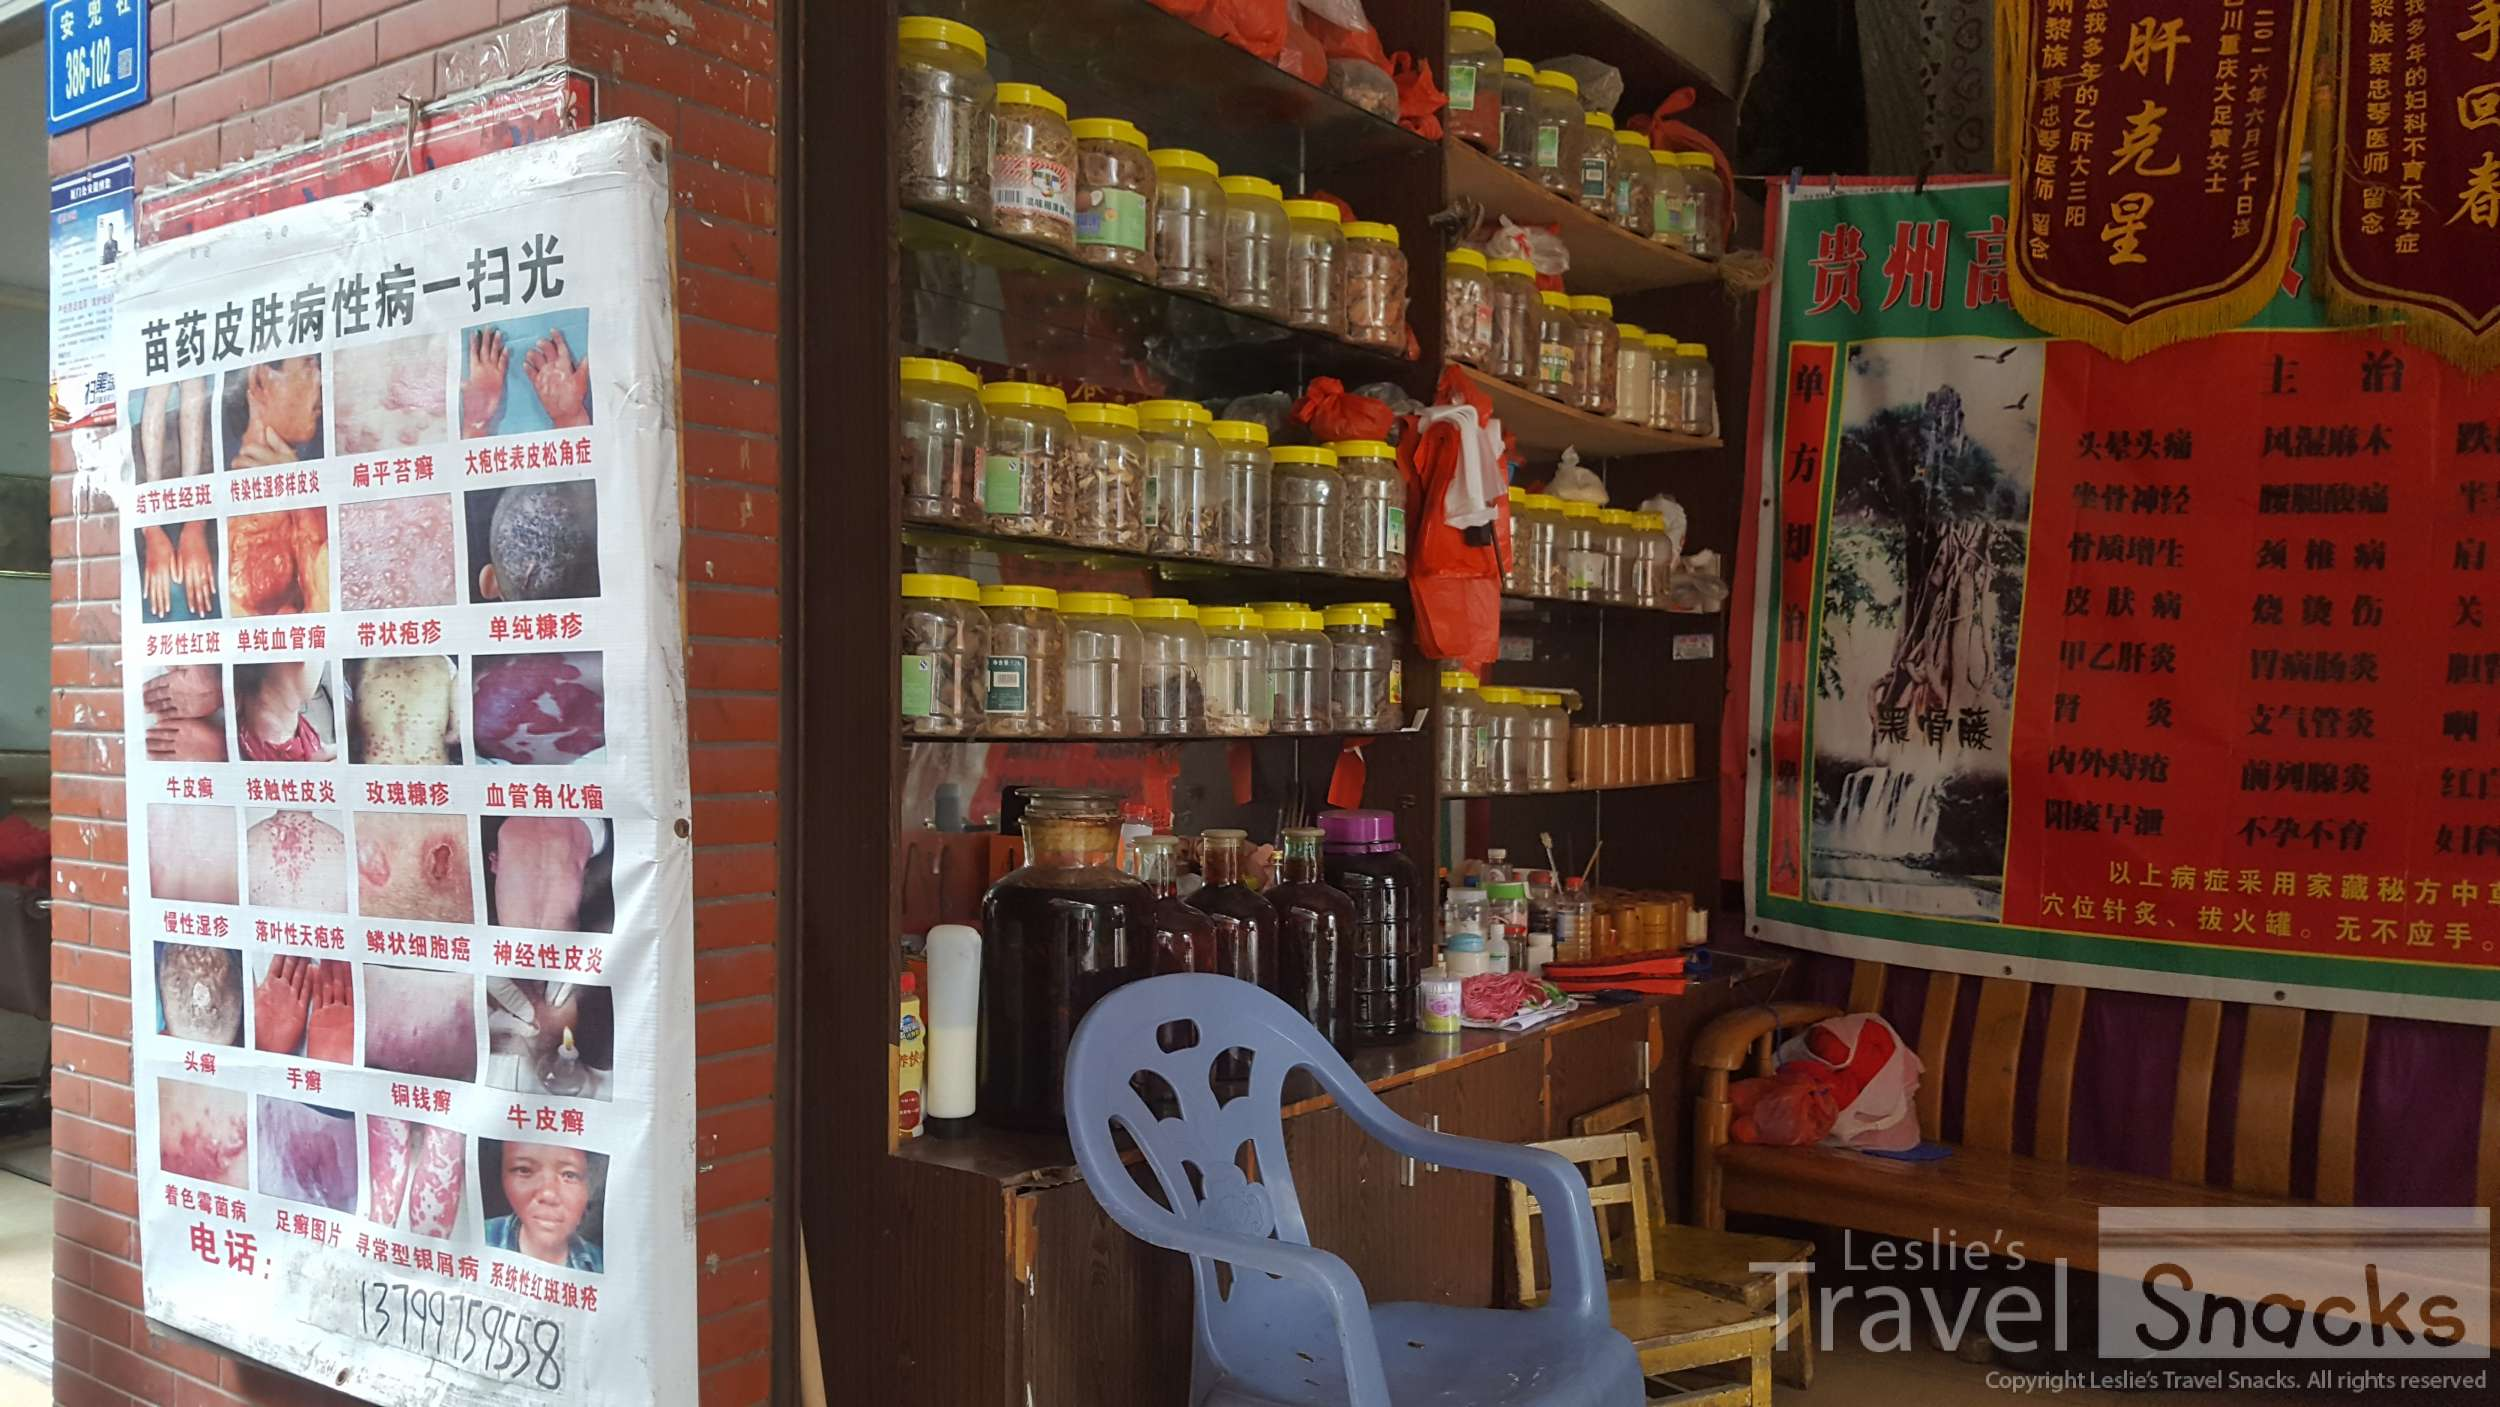 Chinese herbal medicine shop complete with acupuncture and jars of who knows what.